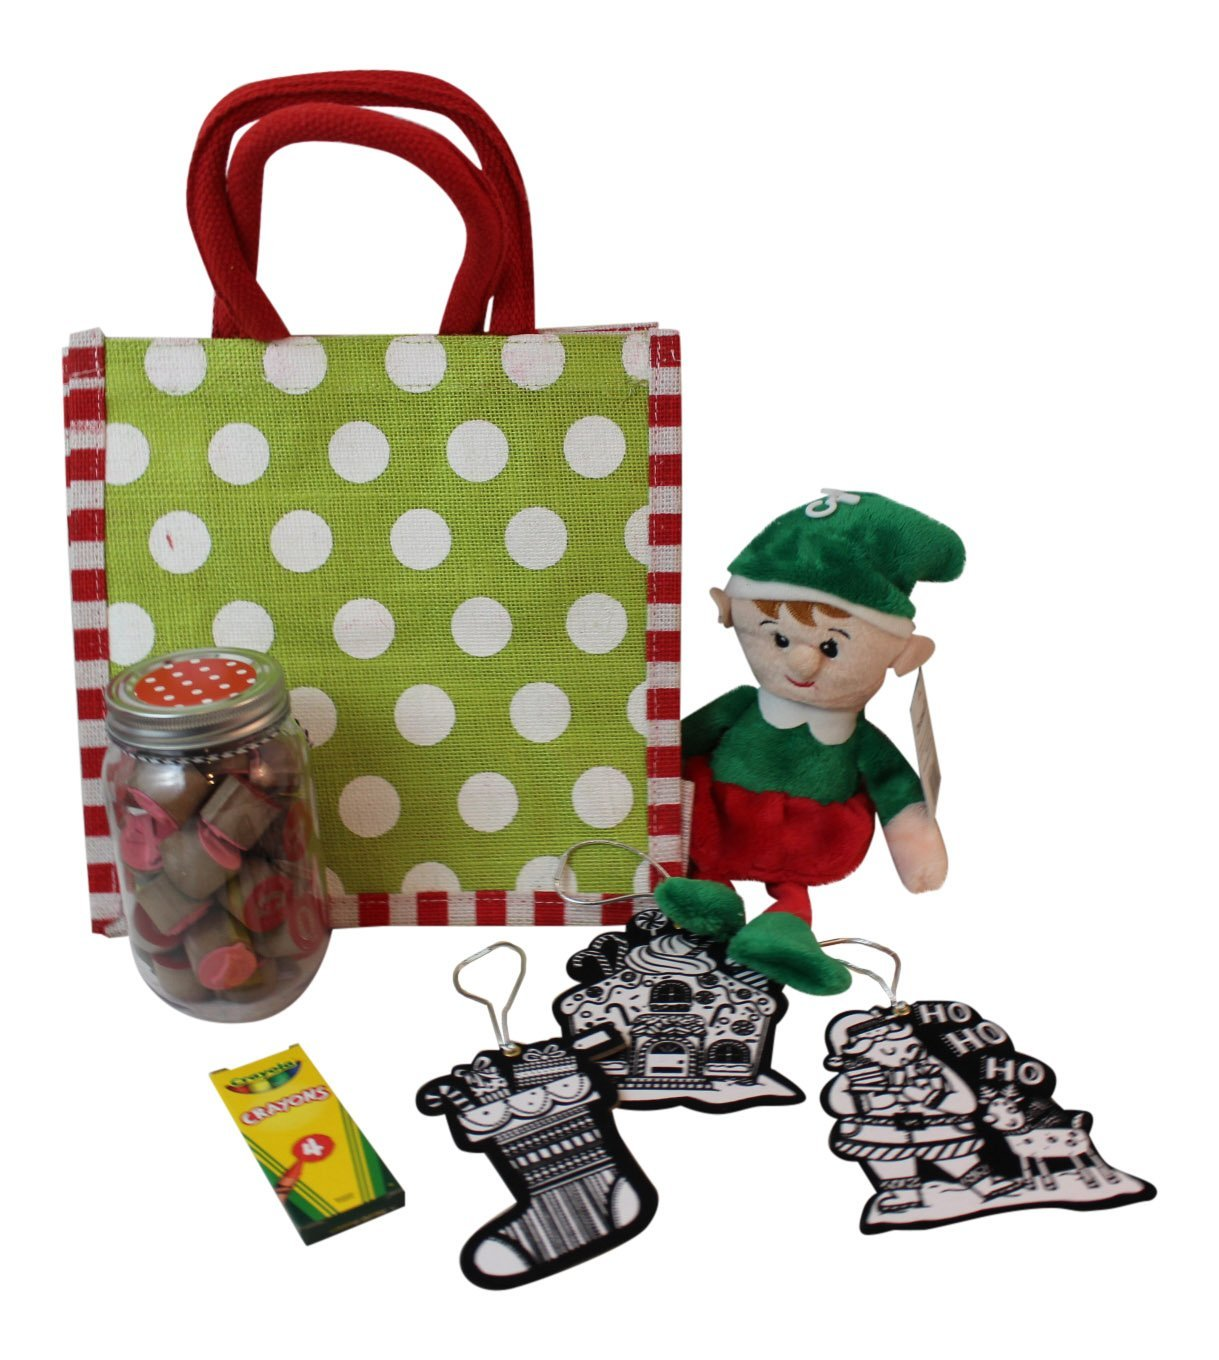 7 pc Kid's Arts and Craft Bundle with Stuffed Plush Elf toy, and Carrying Tote Includes: Soft Plush Elf Toy, Carry tote, Crayons, Color Your Own Ornaments, Rubber Stamp Set